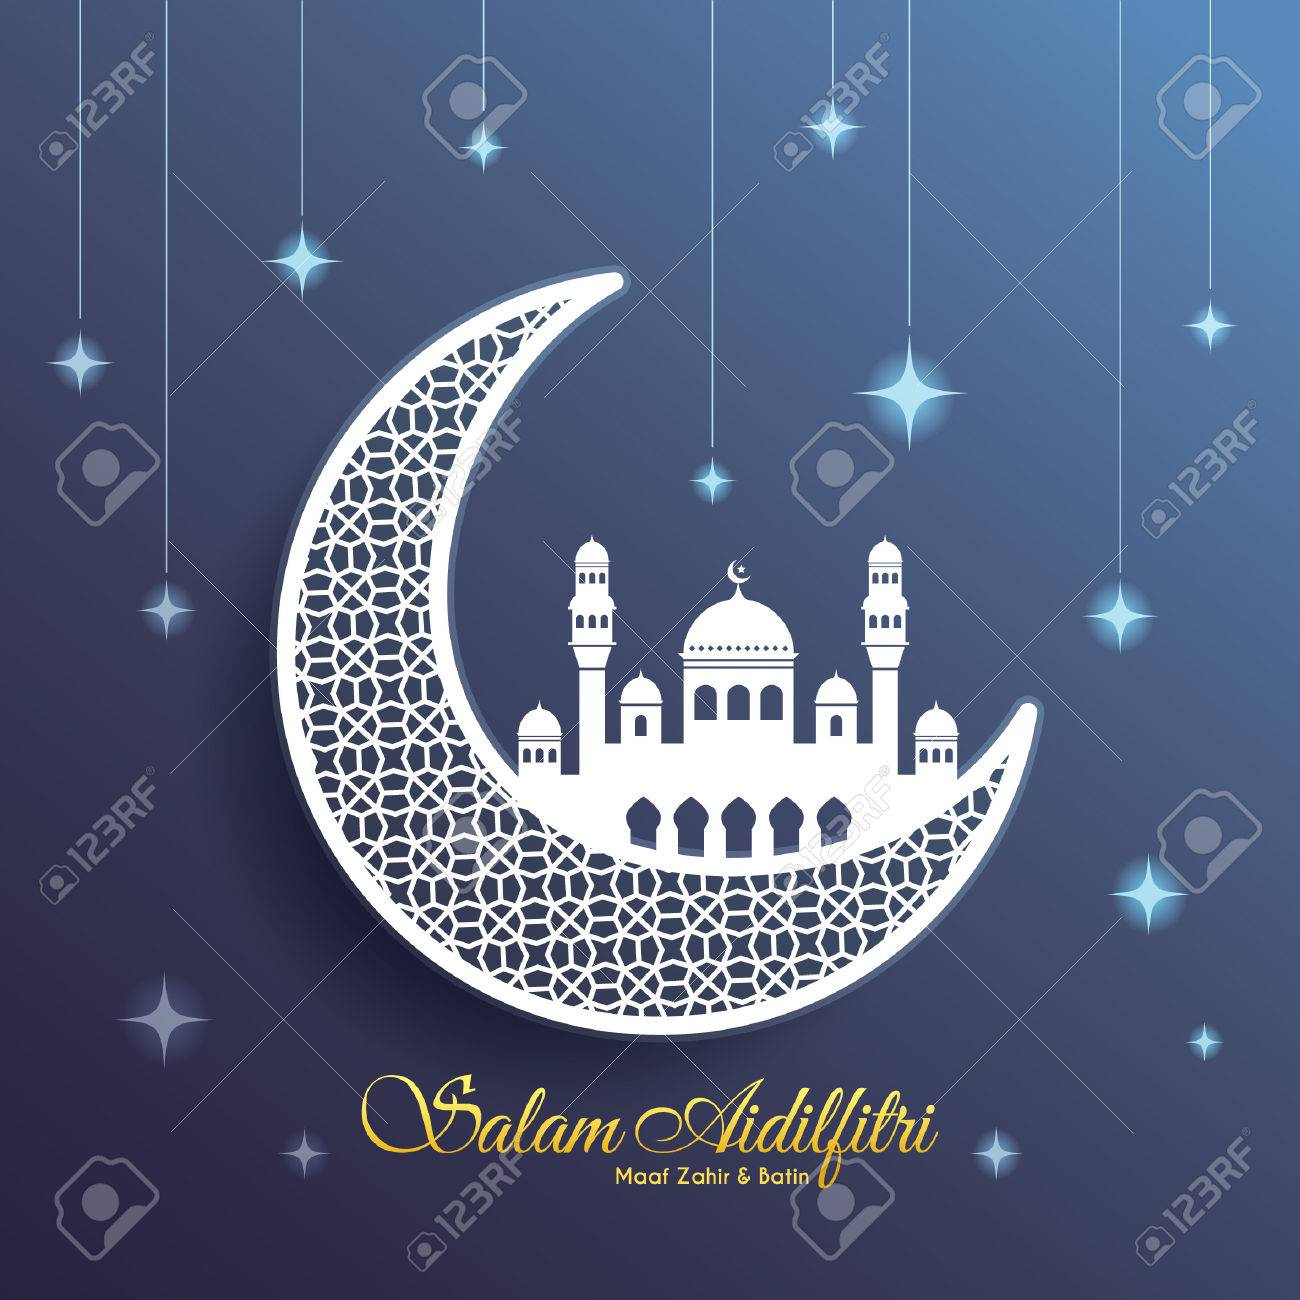 Hari raya greeting card with decorative crescent moon and mosque hari raya greeting card with decorative crescent moon and mosque on starry blue background vector kristyandbryce Image collections